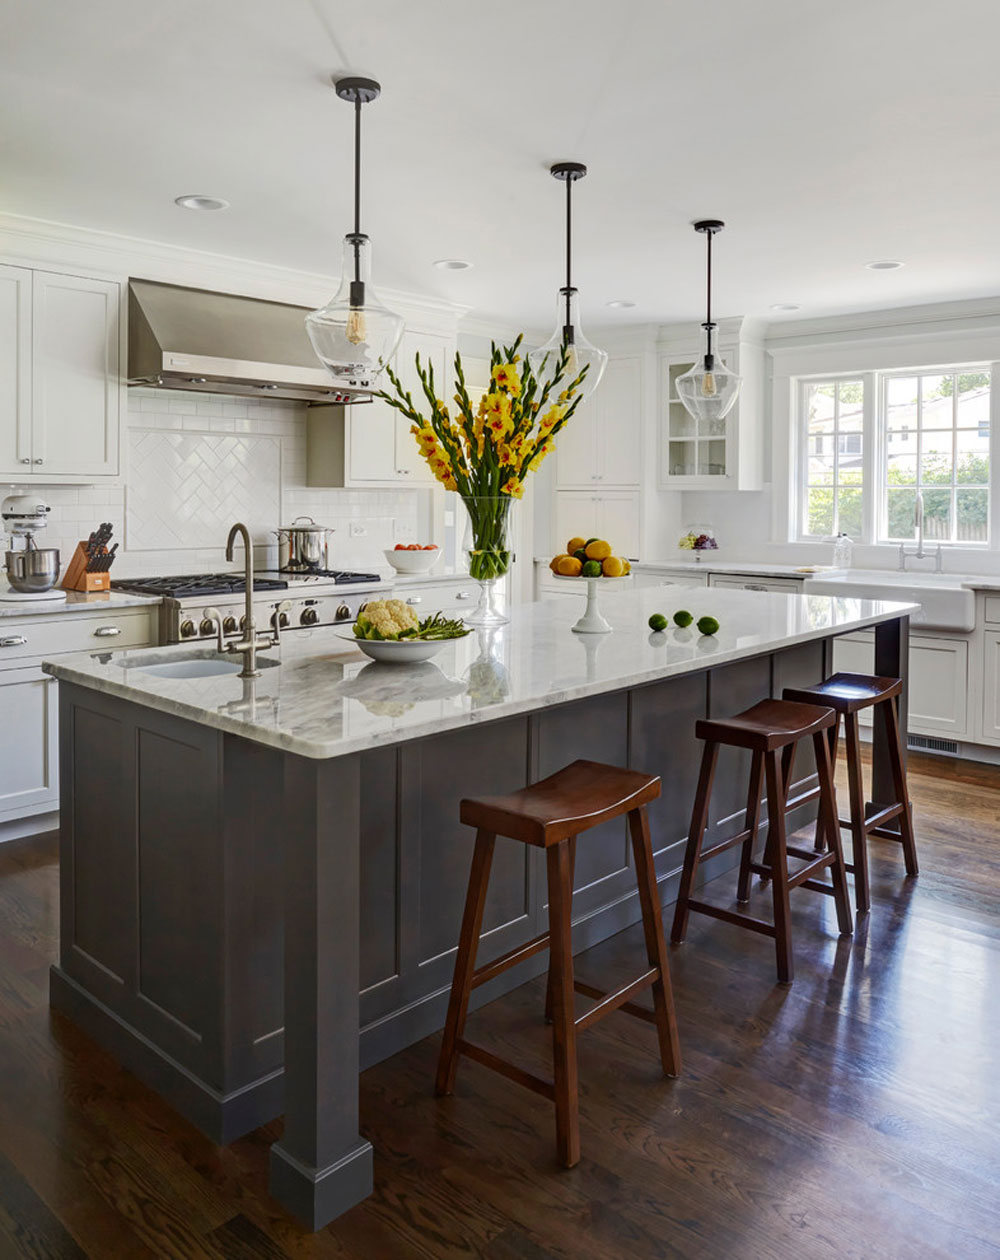 All-That-and-Then-Some-Naperville-Kitchen-by-The-Kitchen-Studio-of-Glen-Ellyn Kitchen remodeling: What you need to know before a kitchen makeover